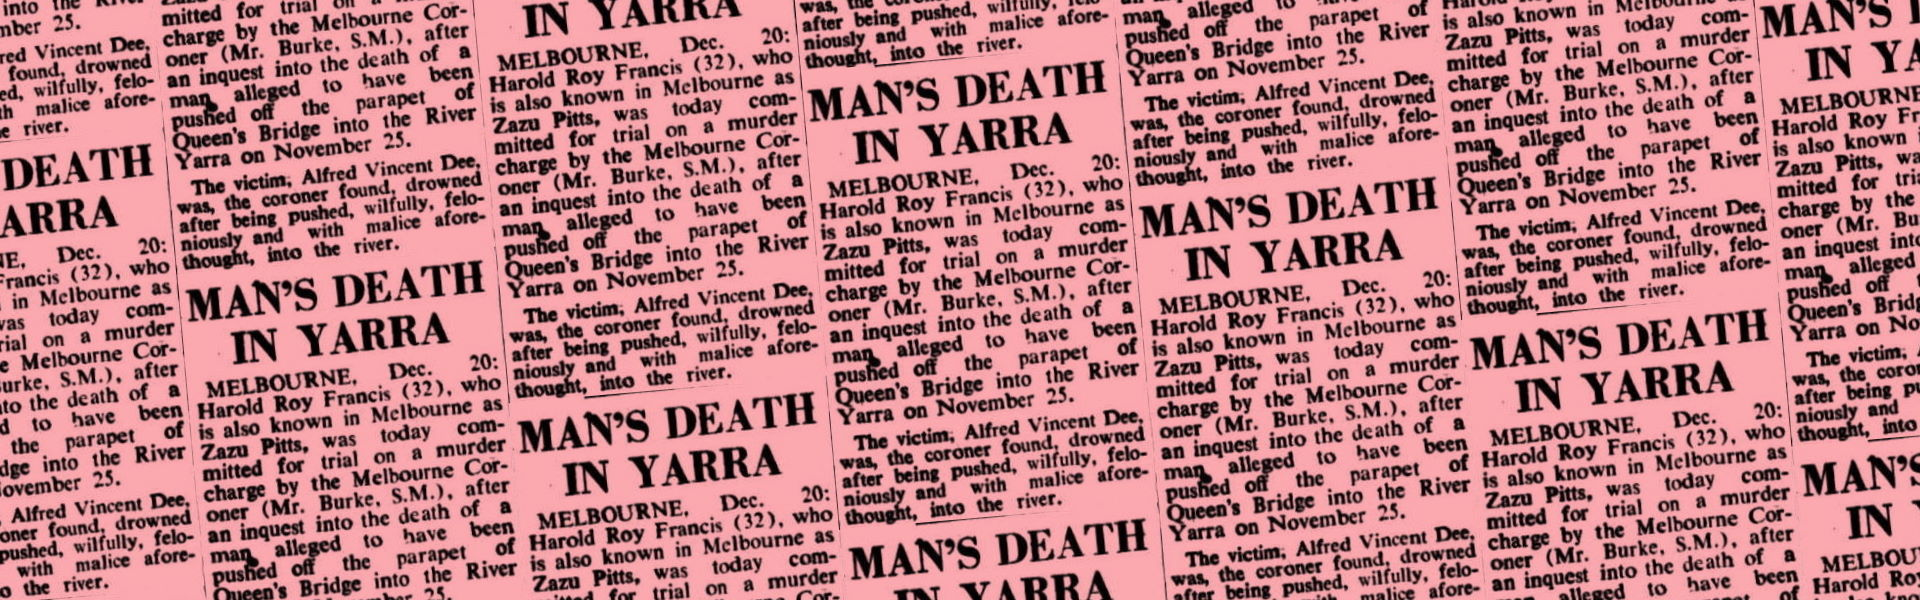 Man's Death in Yarra, West Australian (Perth, WA), 21 December 1950, p3, Newspaper Clipping Collection